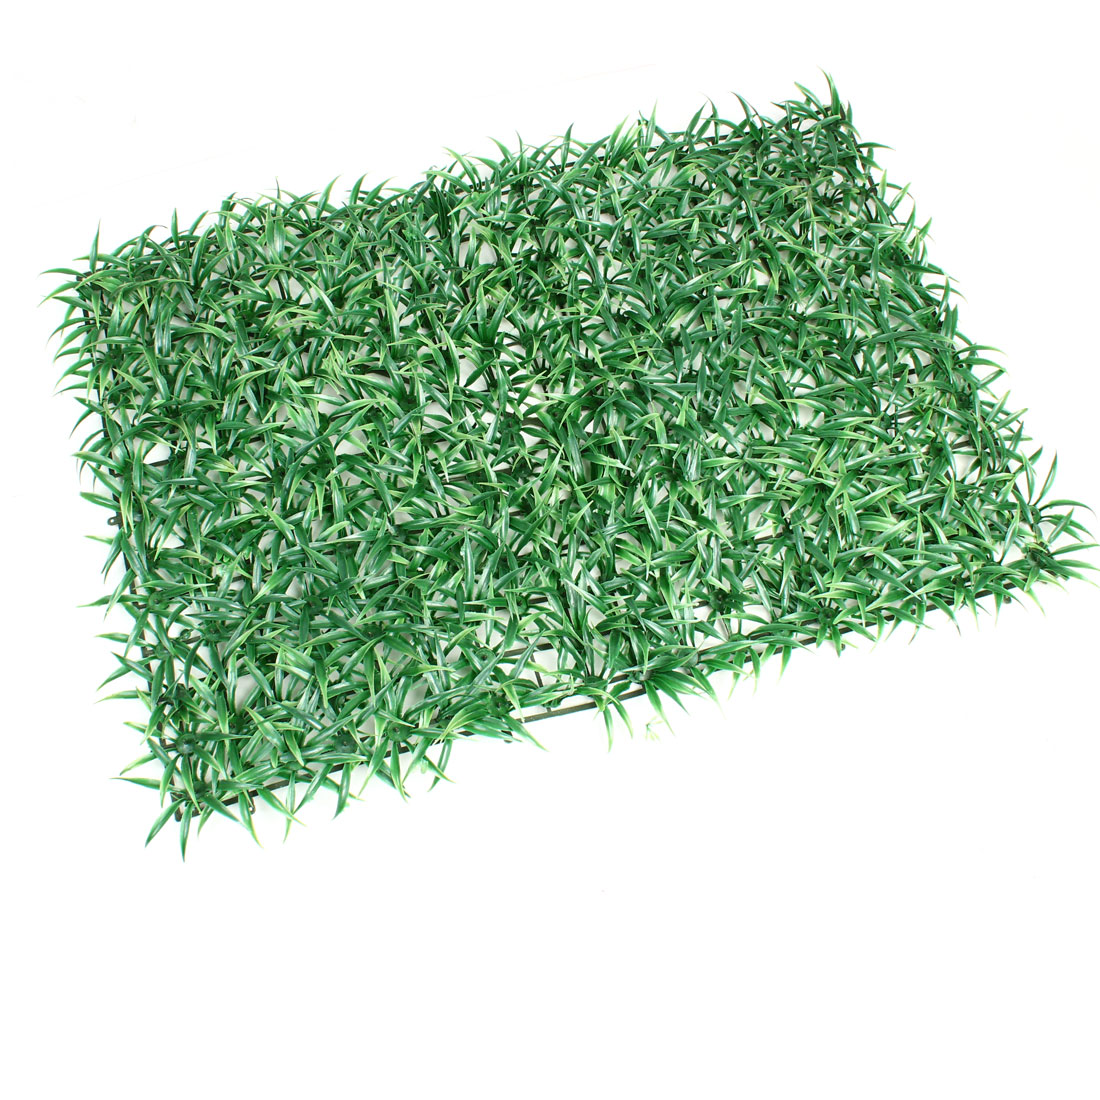 "23"" x 16"" Artificial Green Plastic Grass Lawn Aquarium Fish Tank Decoration"